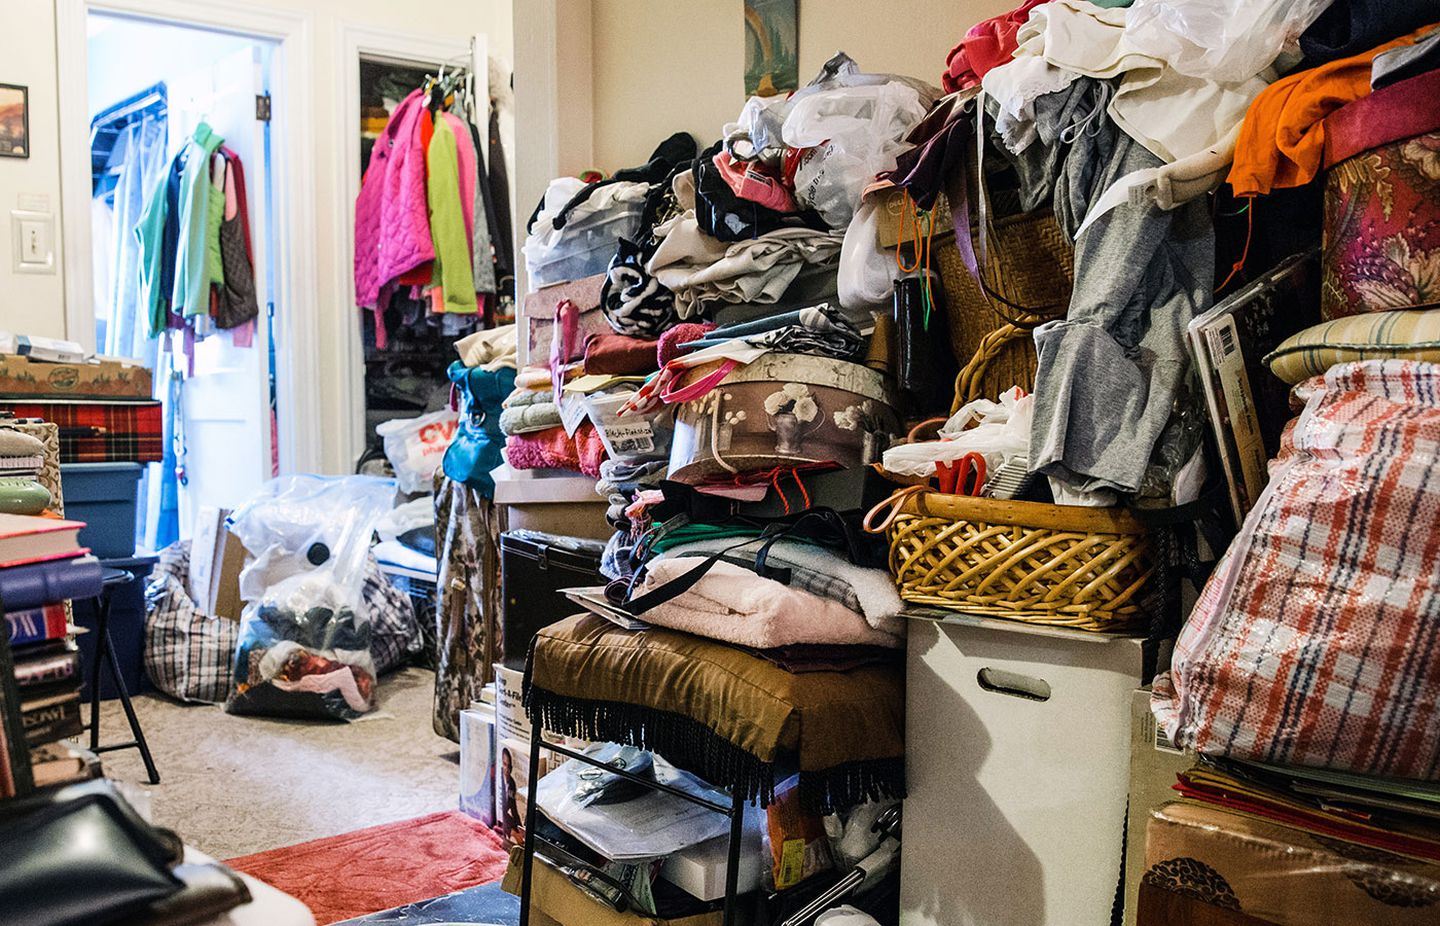 Green Guys Junk Removal provides Hoarder clean outs in marietta ga